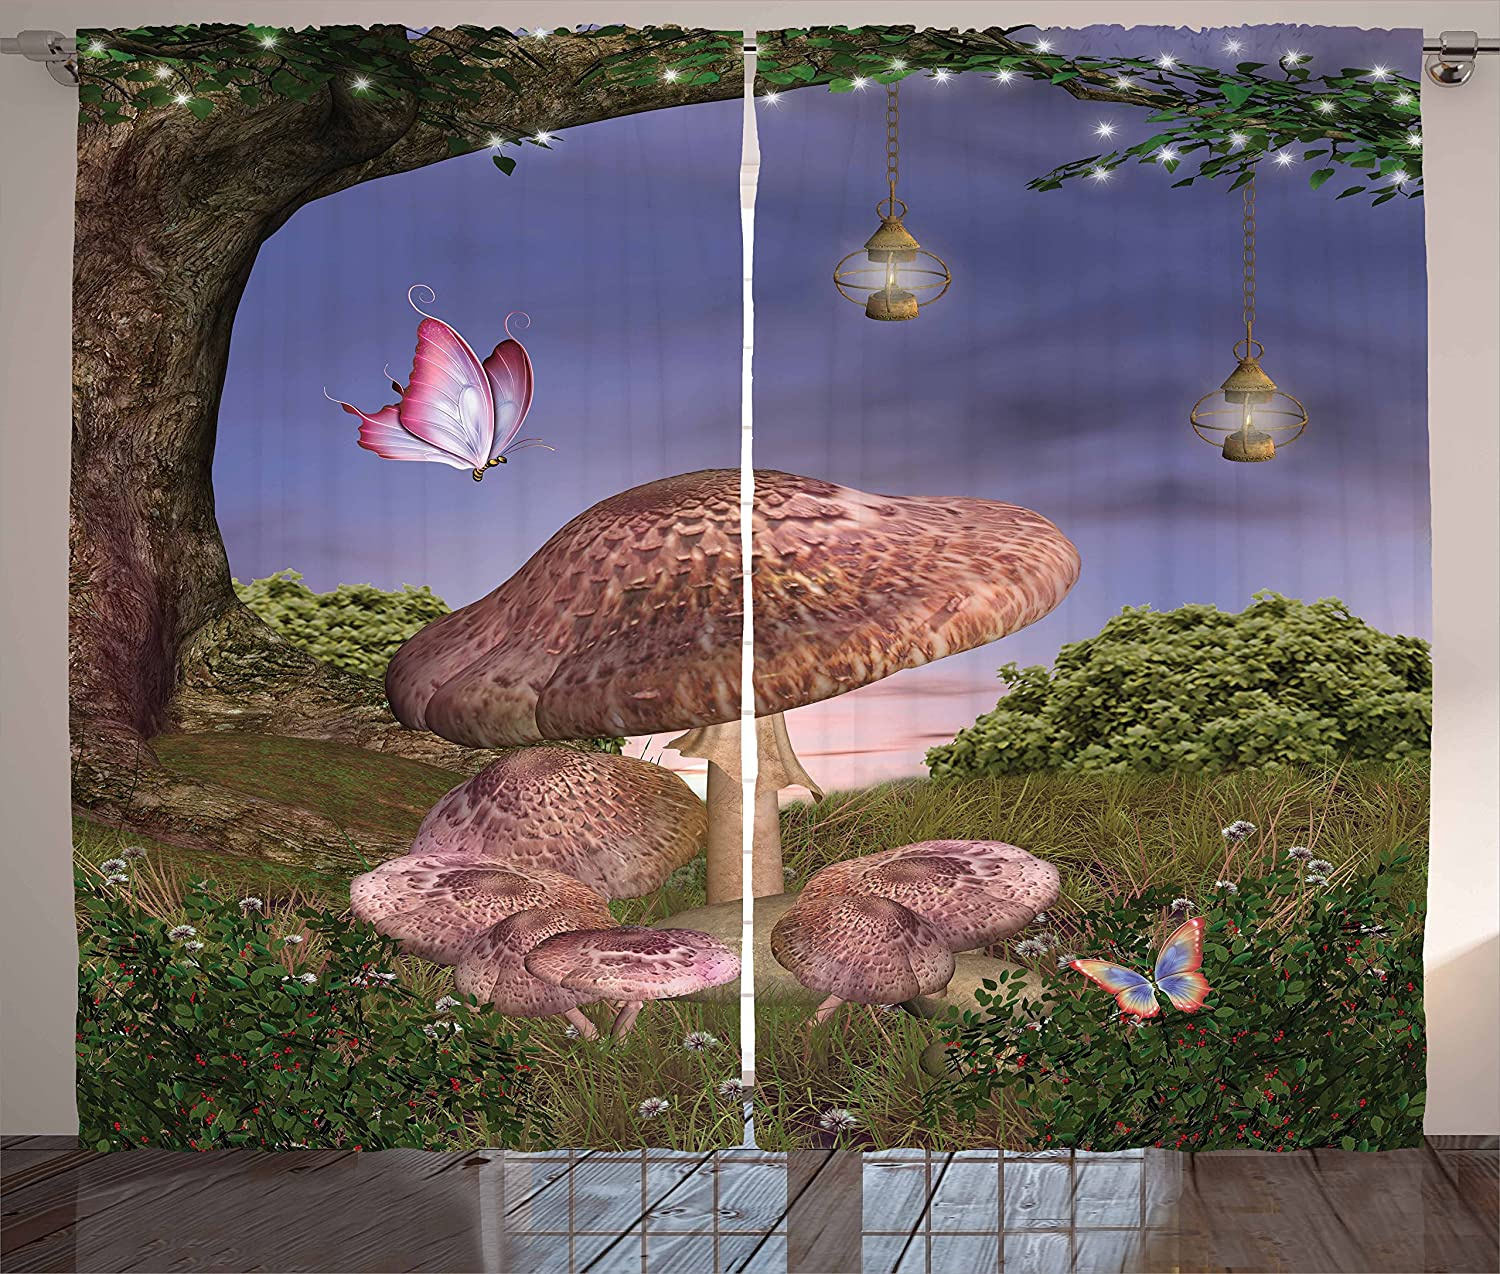 Fantasy Kitchen Curtains Multicolor Living Room Bedroom Window Drapes Enchanted Forest with Butterflies and Mushroom Magic Fairy Curtains AliExpress